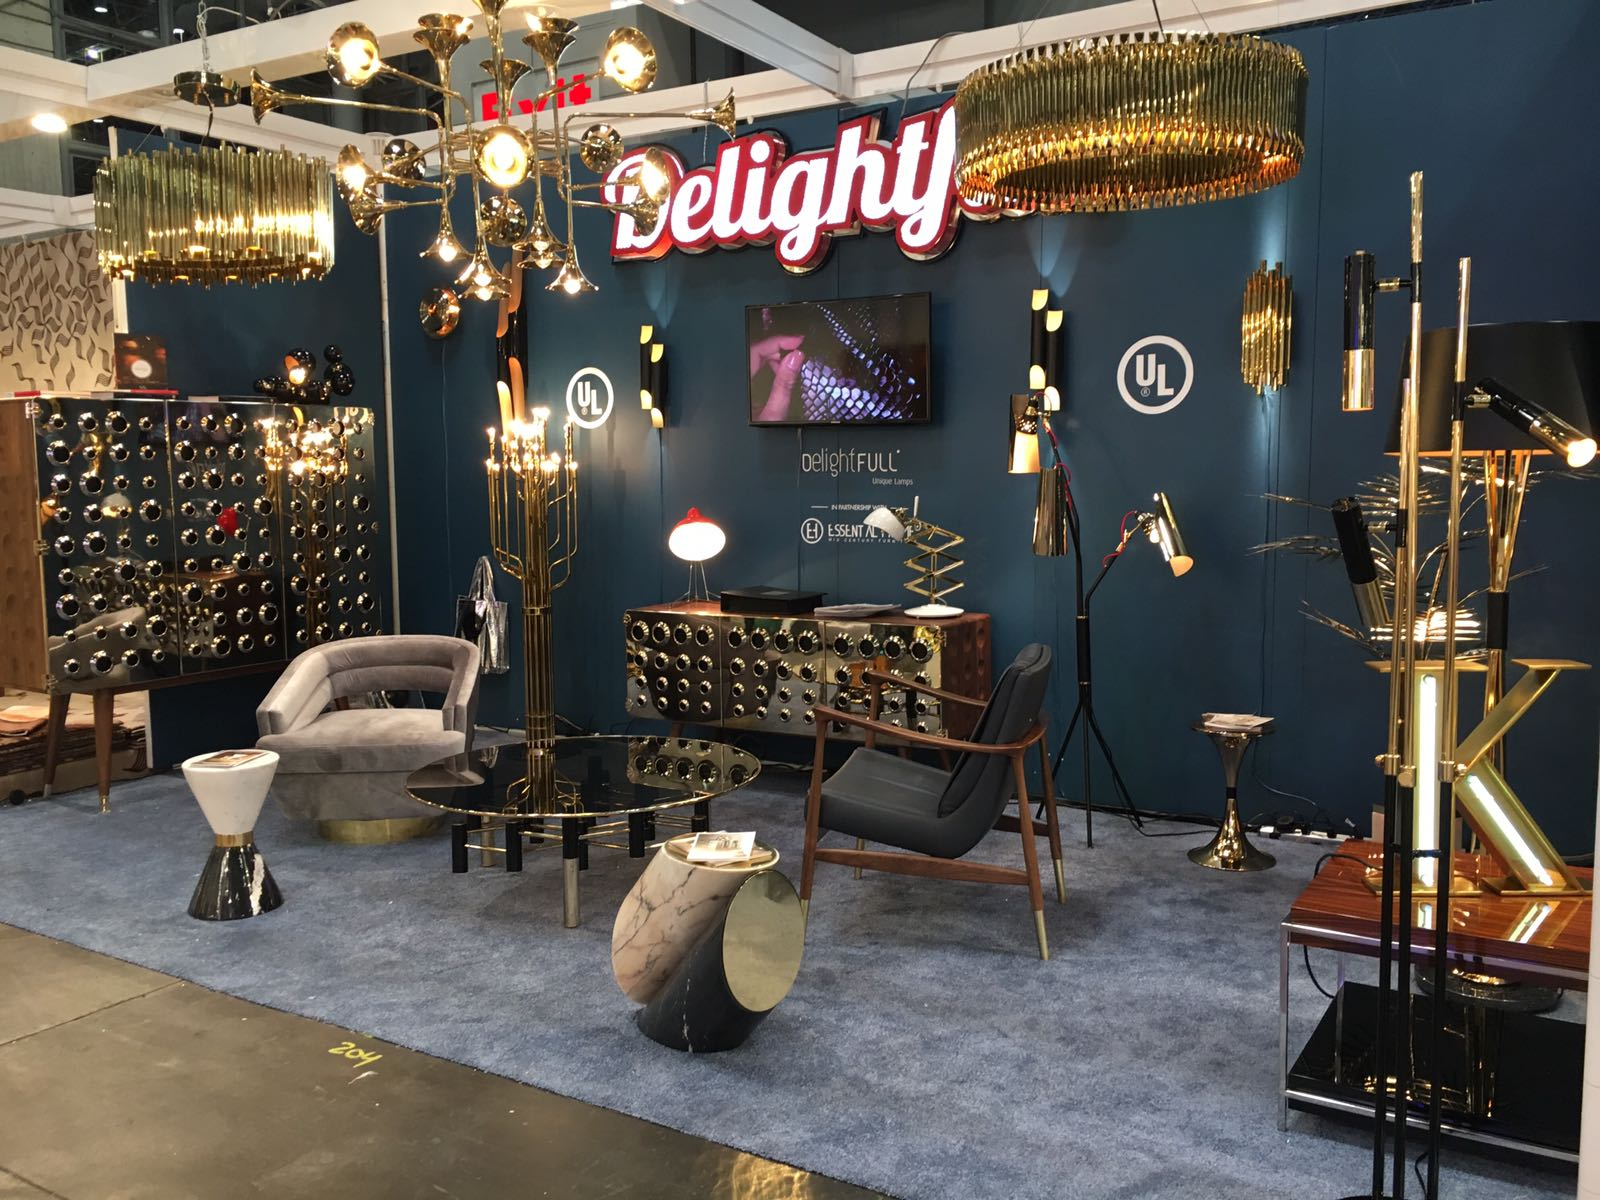 Come Find What Boutique Design New York Has To Offer You This Year 8 Boutique Design New York Come Find What Boutique Design New York Has To Offer You This Year Come Find What Boutique Design New York Has To Offer You This Year 8